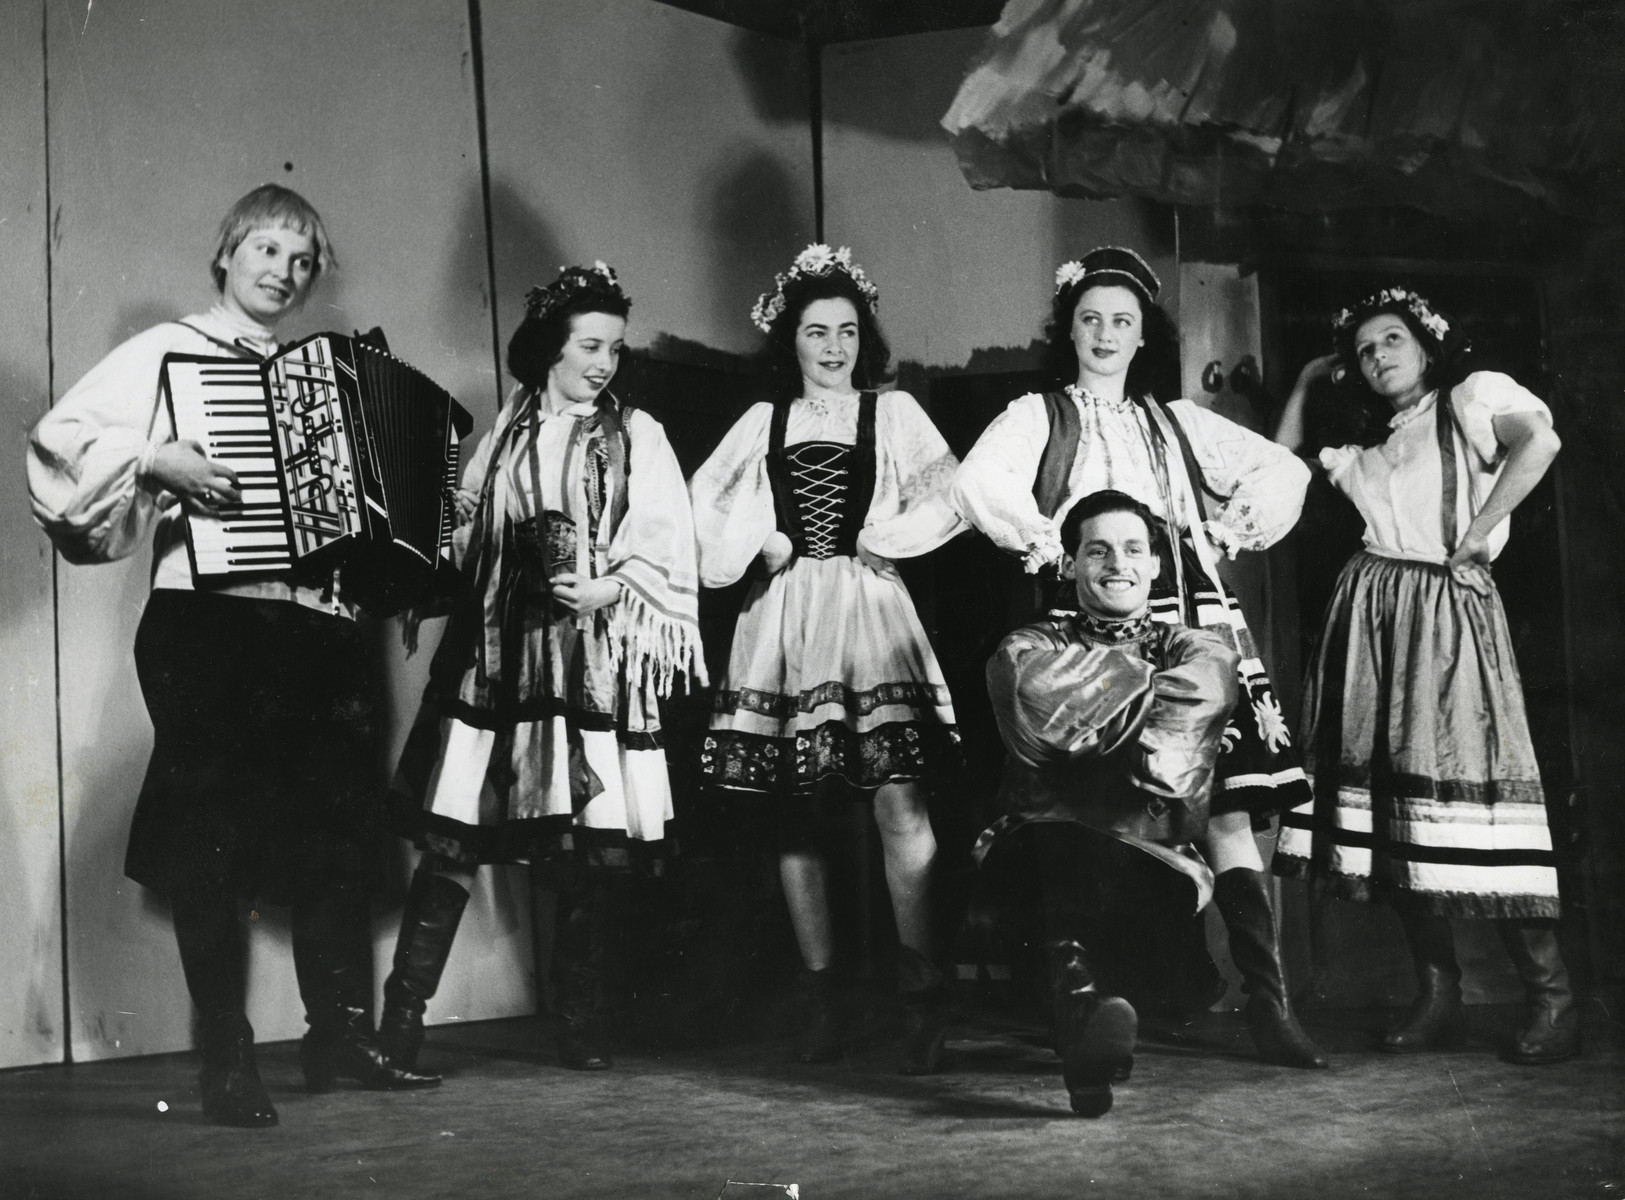 Abraham Kischinovsky dances the Mazurka in the Yiddish Theater in Sweden.